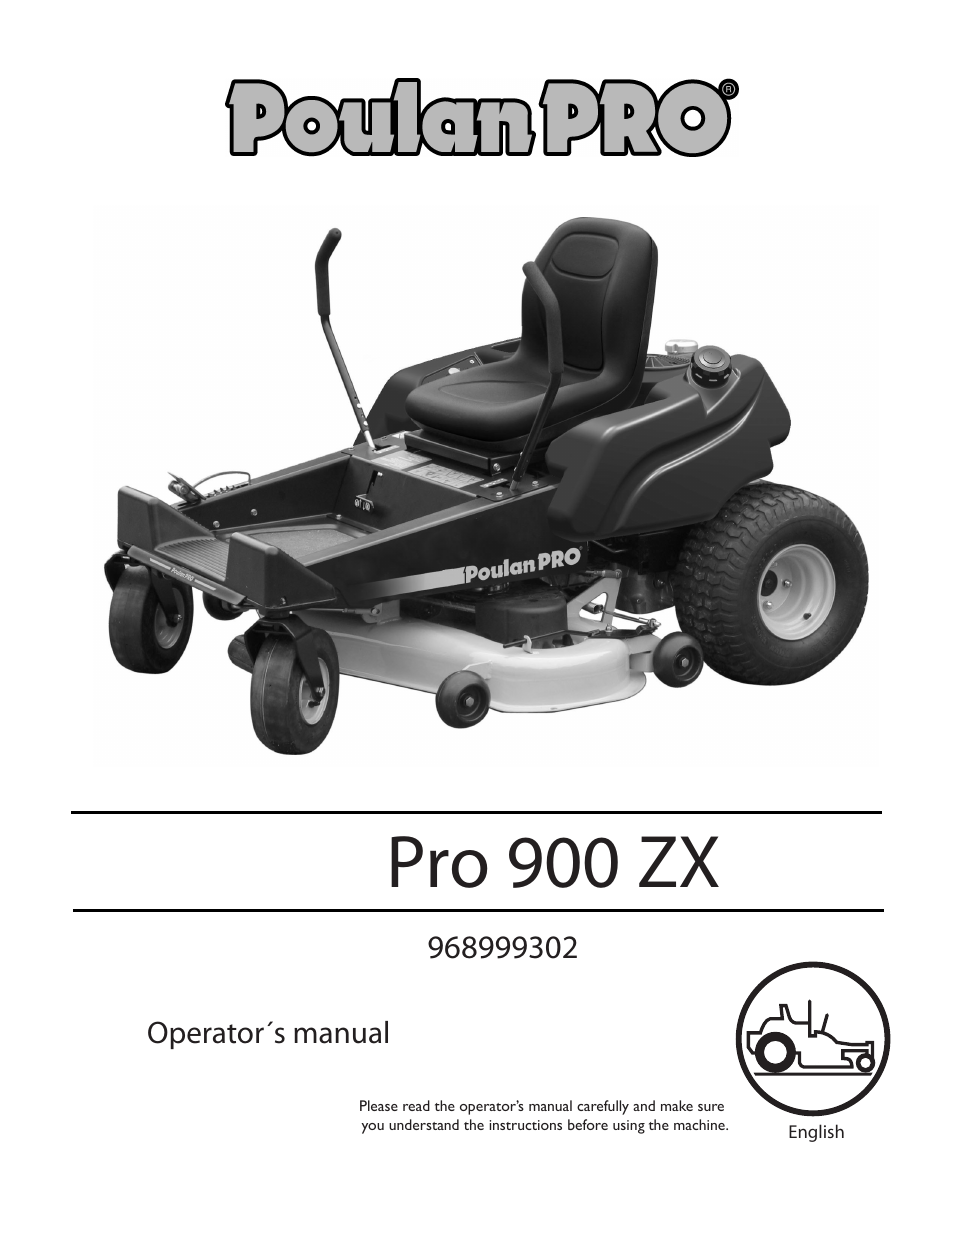 Poulan Pro Wiring Diagrams Riding Lawn Mower Diagram 900 Zx 968999302 User Manual 80 Pages Zero Turn